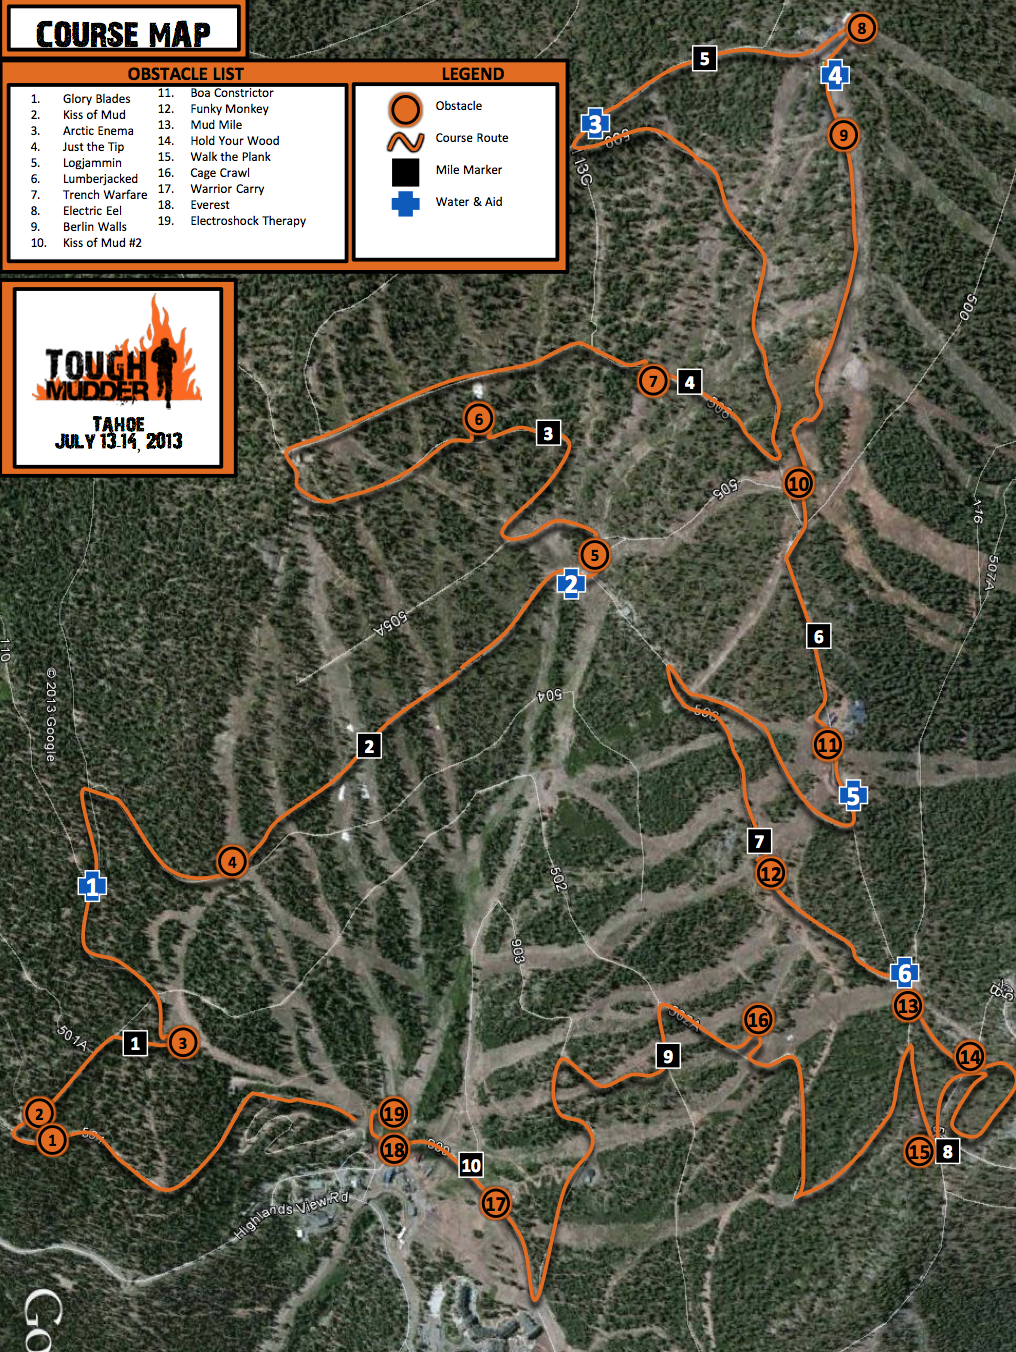 Tough Mudder Tahoe Summer 2013 map